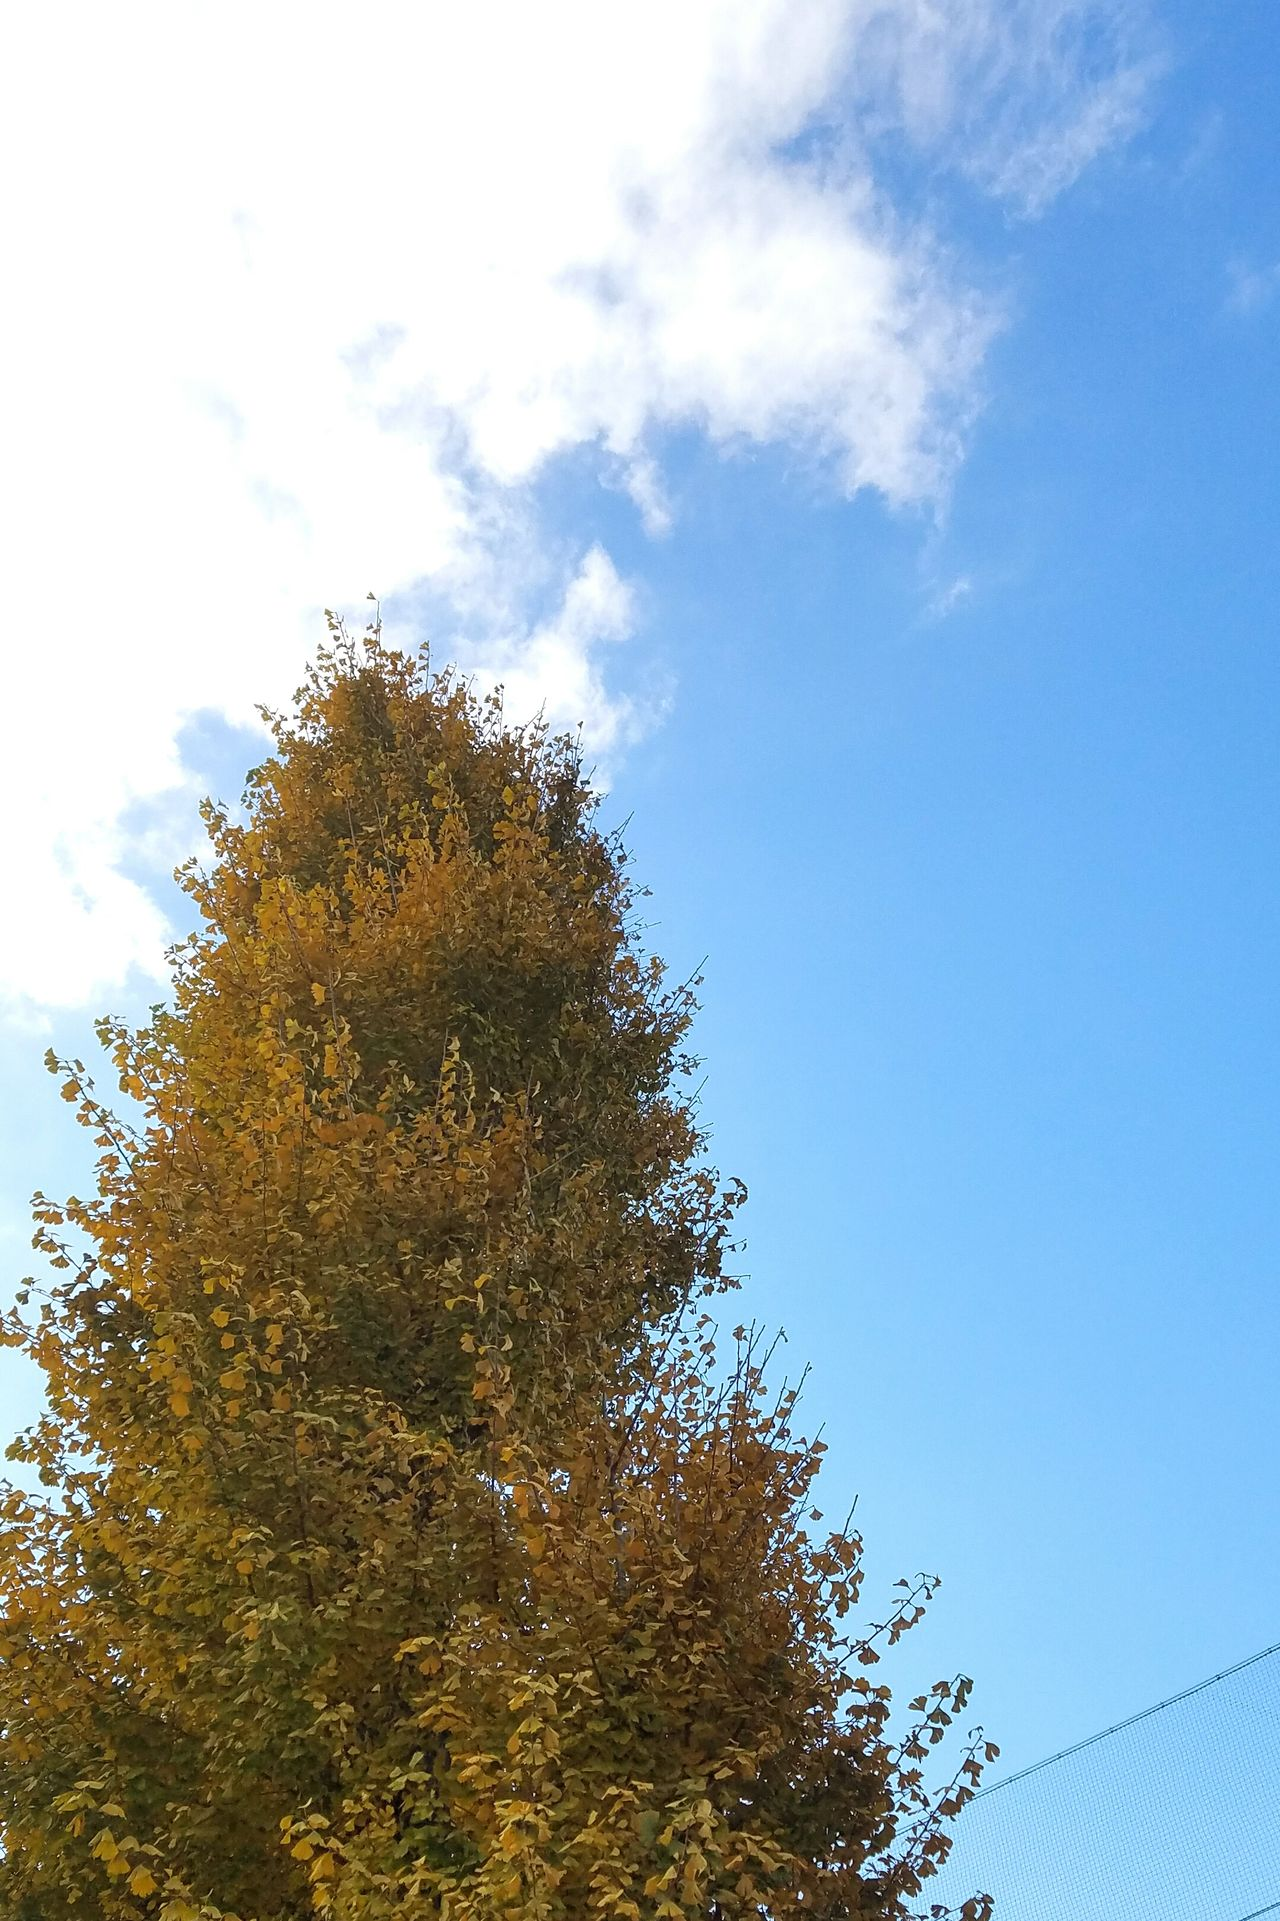 Tree Nature Beauty In Nature Sky Japanese Photography Autumn Ginkgo 空 雲 Yellowleafs